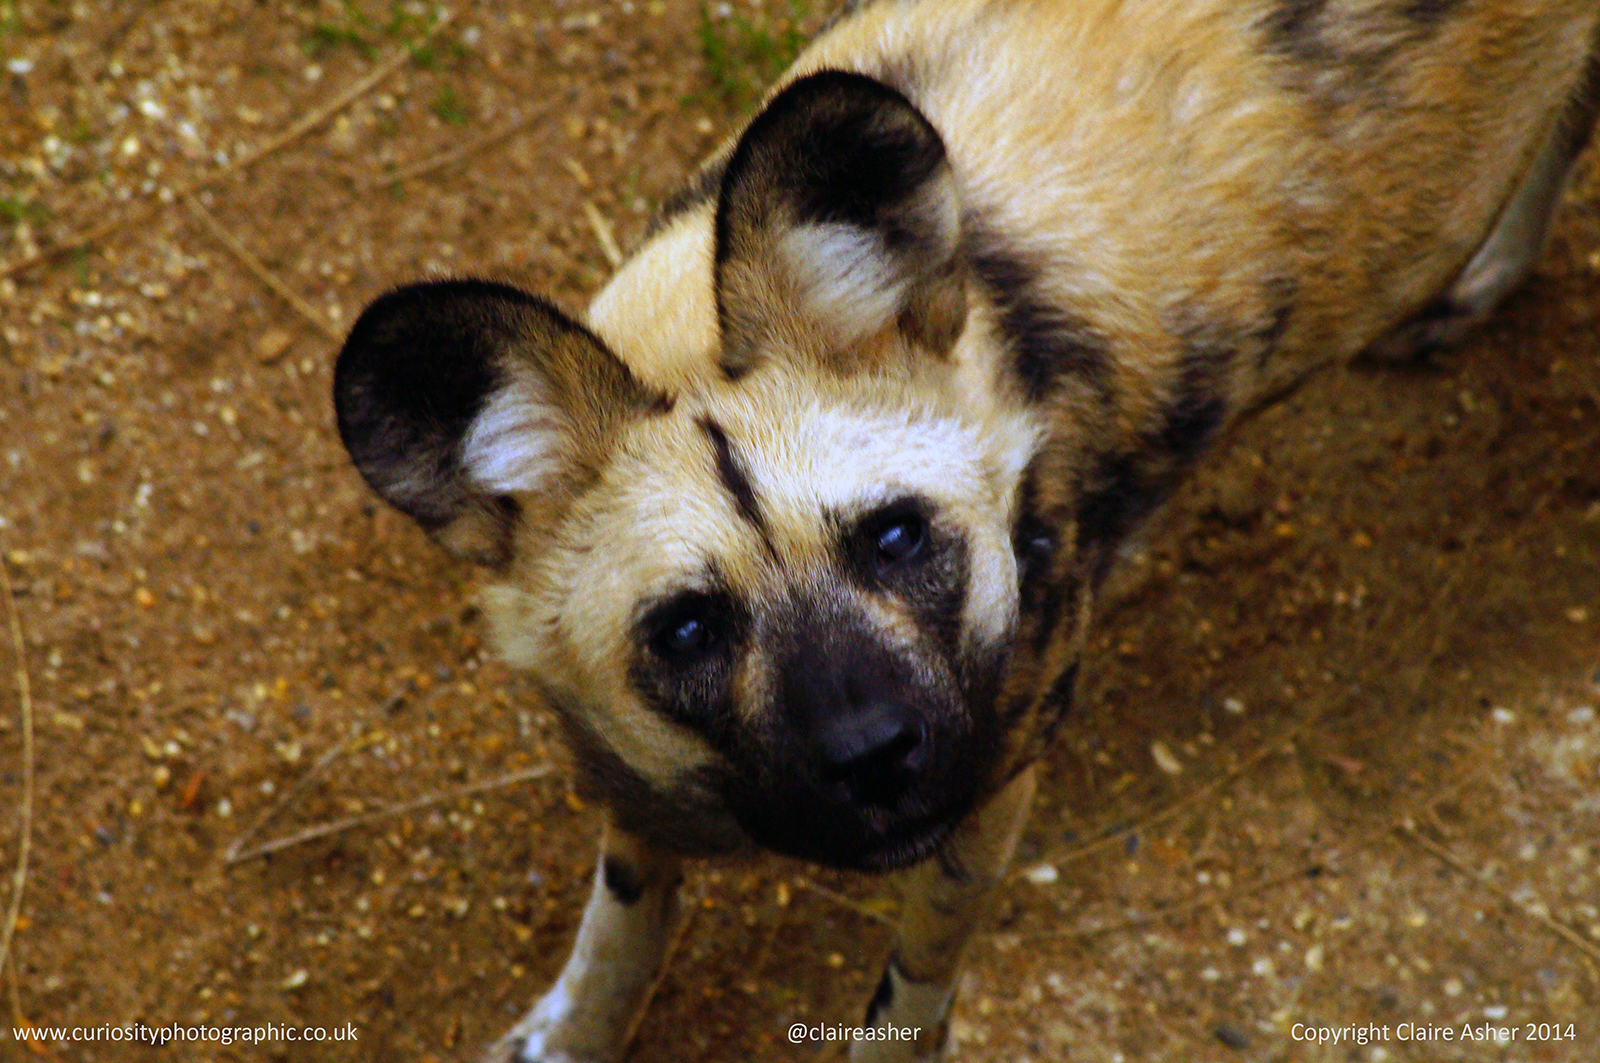 An African Wild Dog (Lycaon pictus) photographed in captivity in 2014.